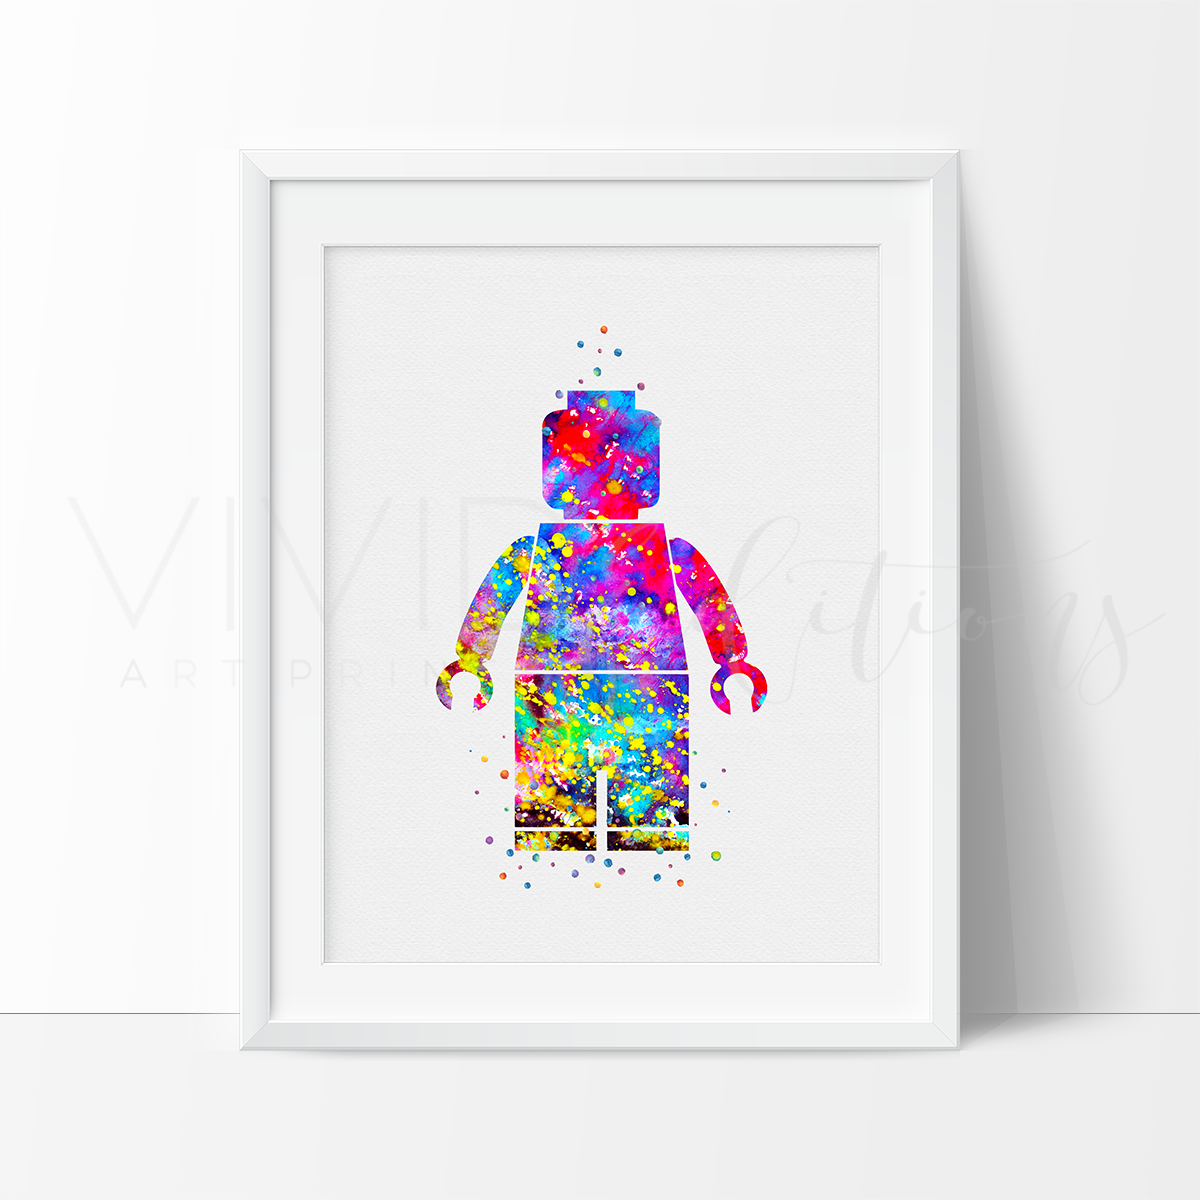 lego man nursery art print wall decor vivideditions. Black Bedroom Furniture Sets. Home Design Ideas